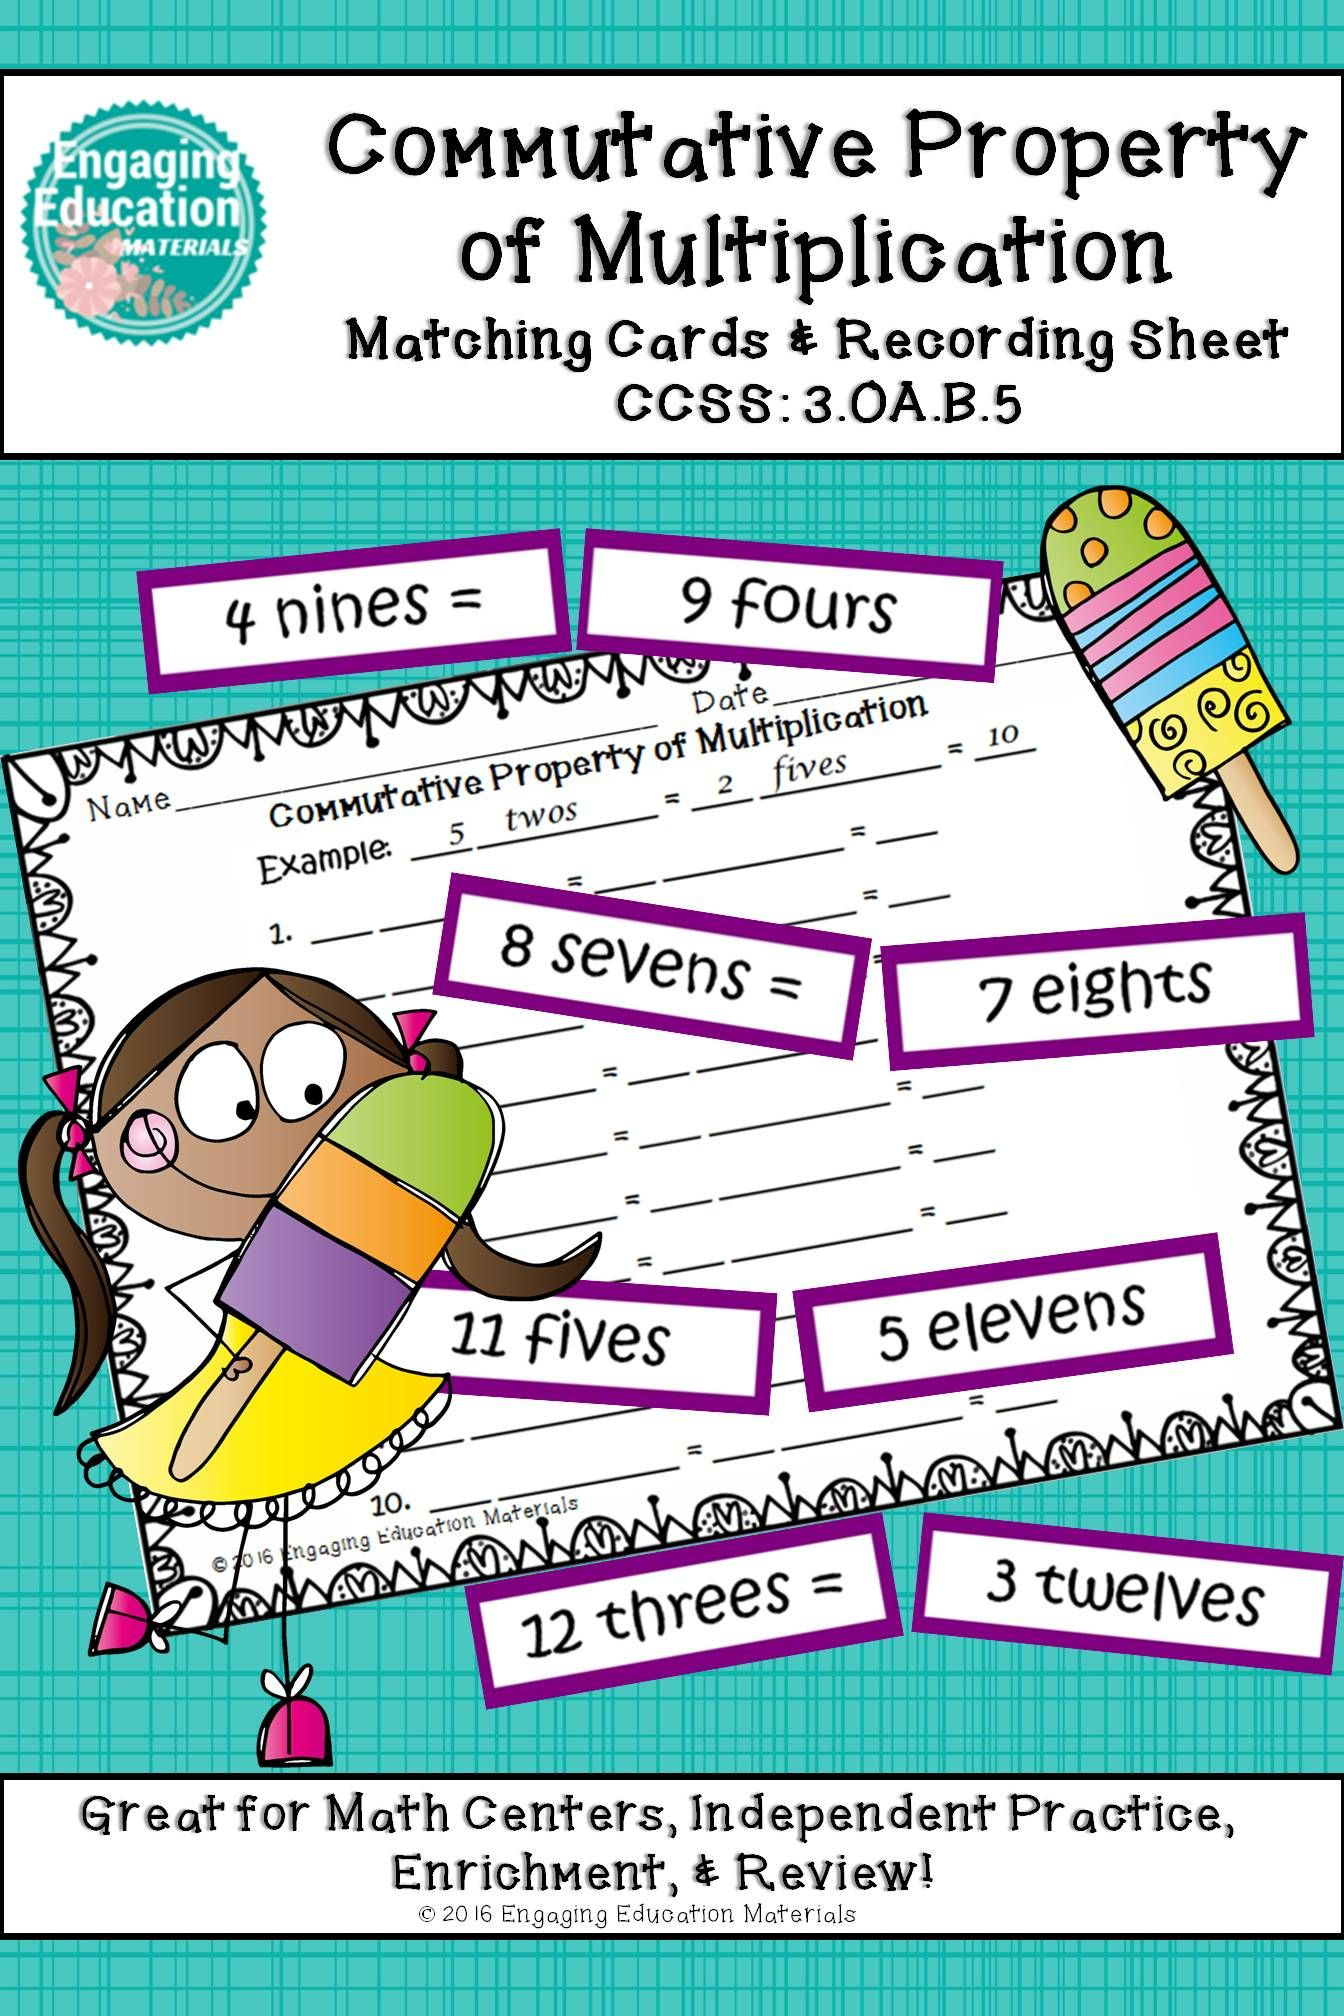 I Love This Math Center Activity For Reinforcing The